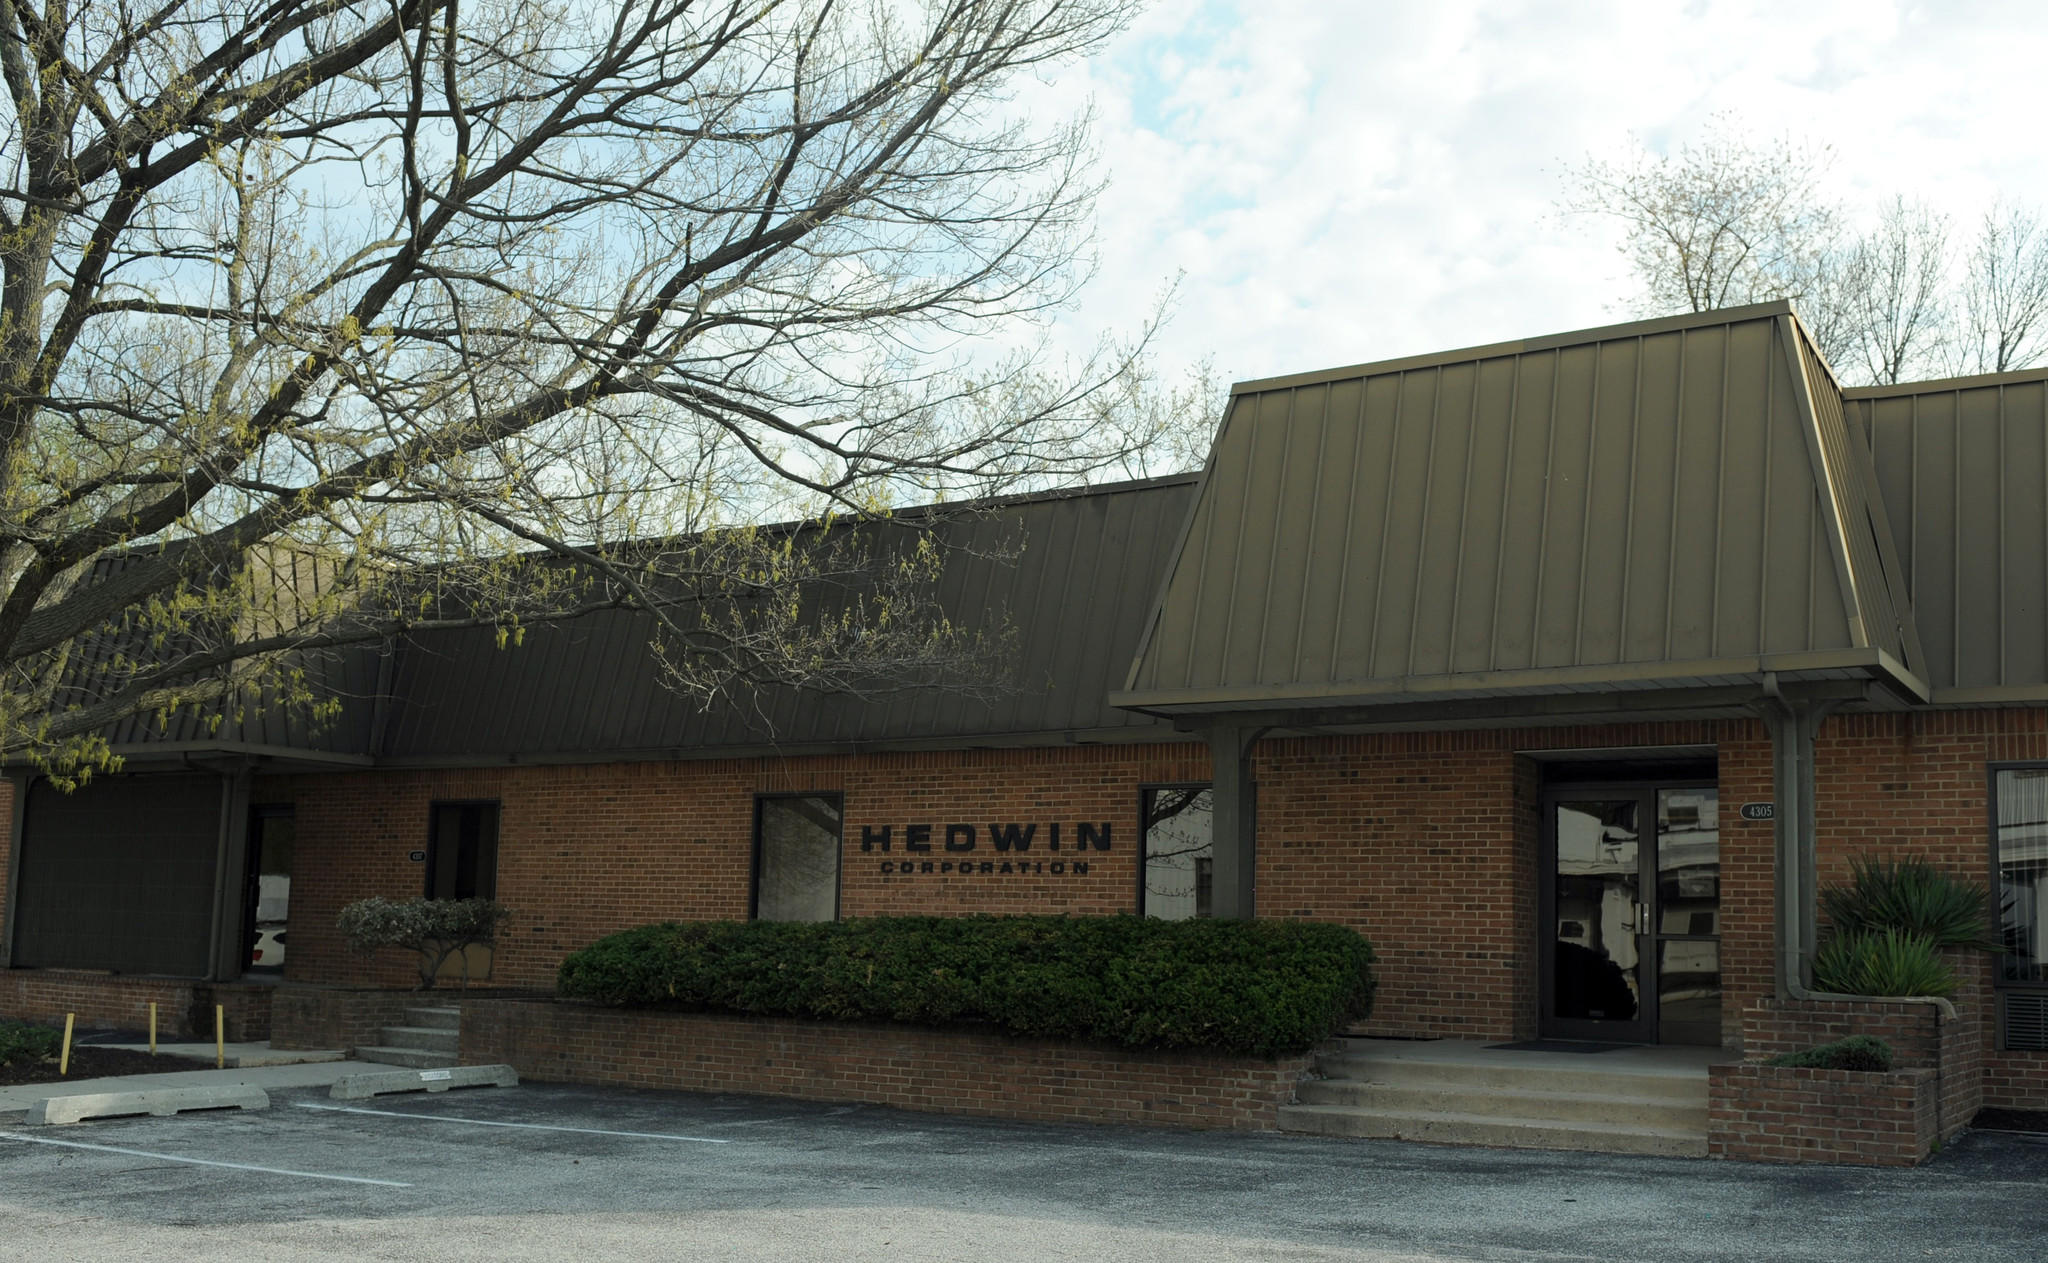 Hedwin Corp., an employee owned company, is in bankruptcy protection and is on the verge of being sold.